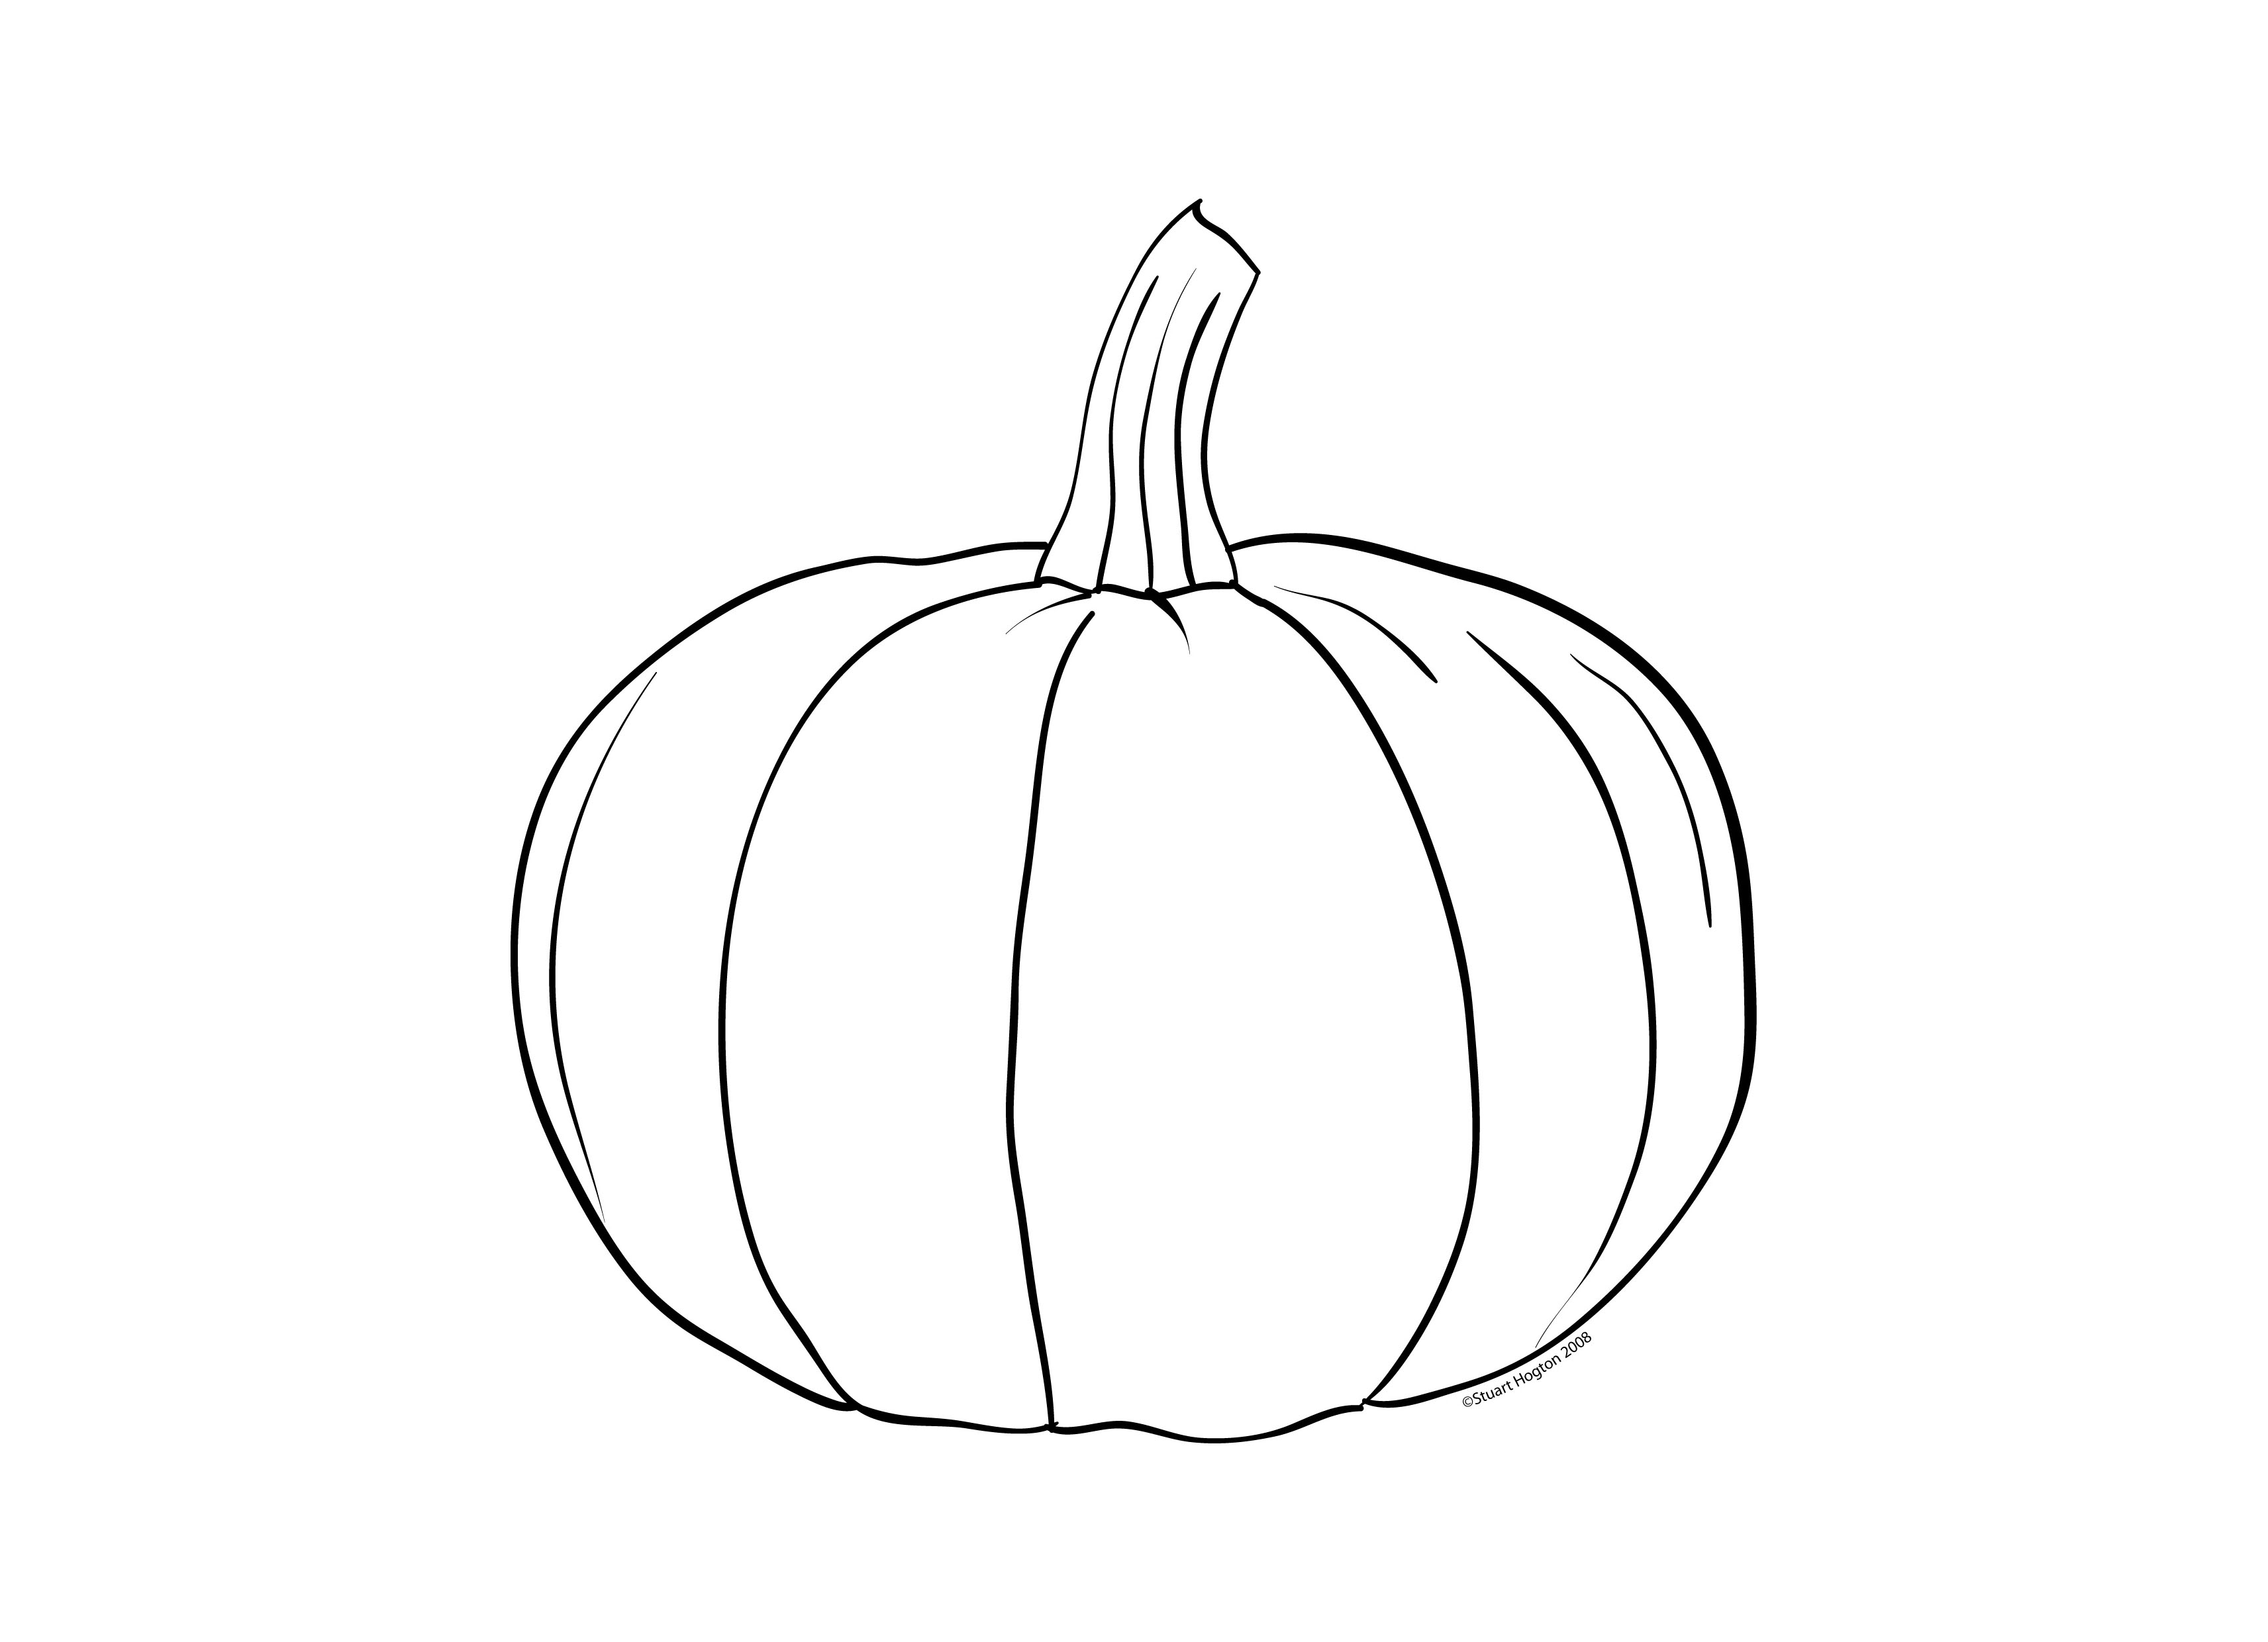 pictures of pumpkins free pumpkin coloring pages for kids of pumpkins pictures